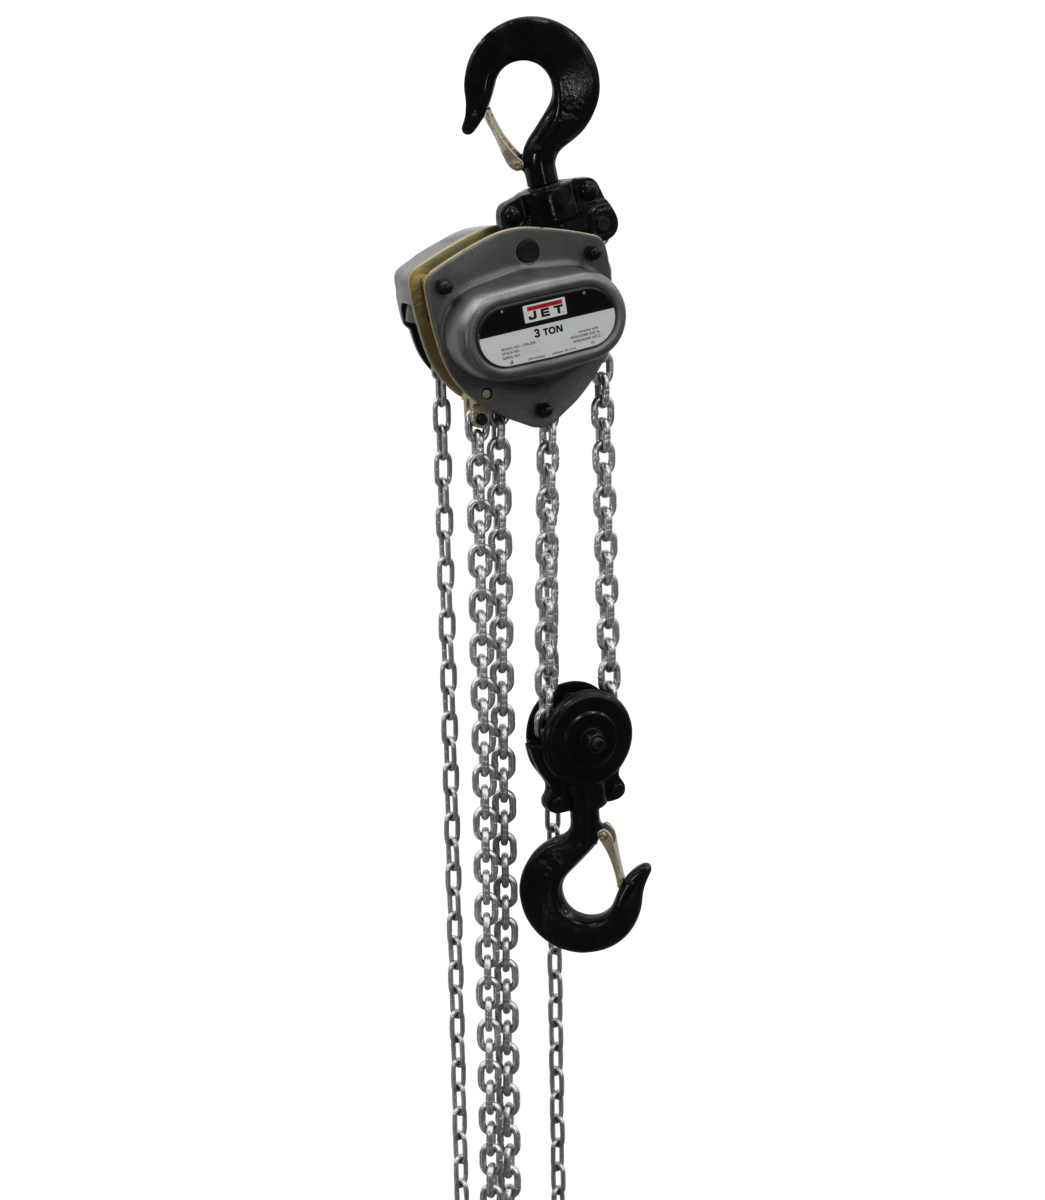 L-100-300WO-20, 3-Ton Hand Chain Hoist With 20' Lift & Overload Protection